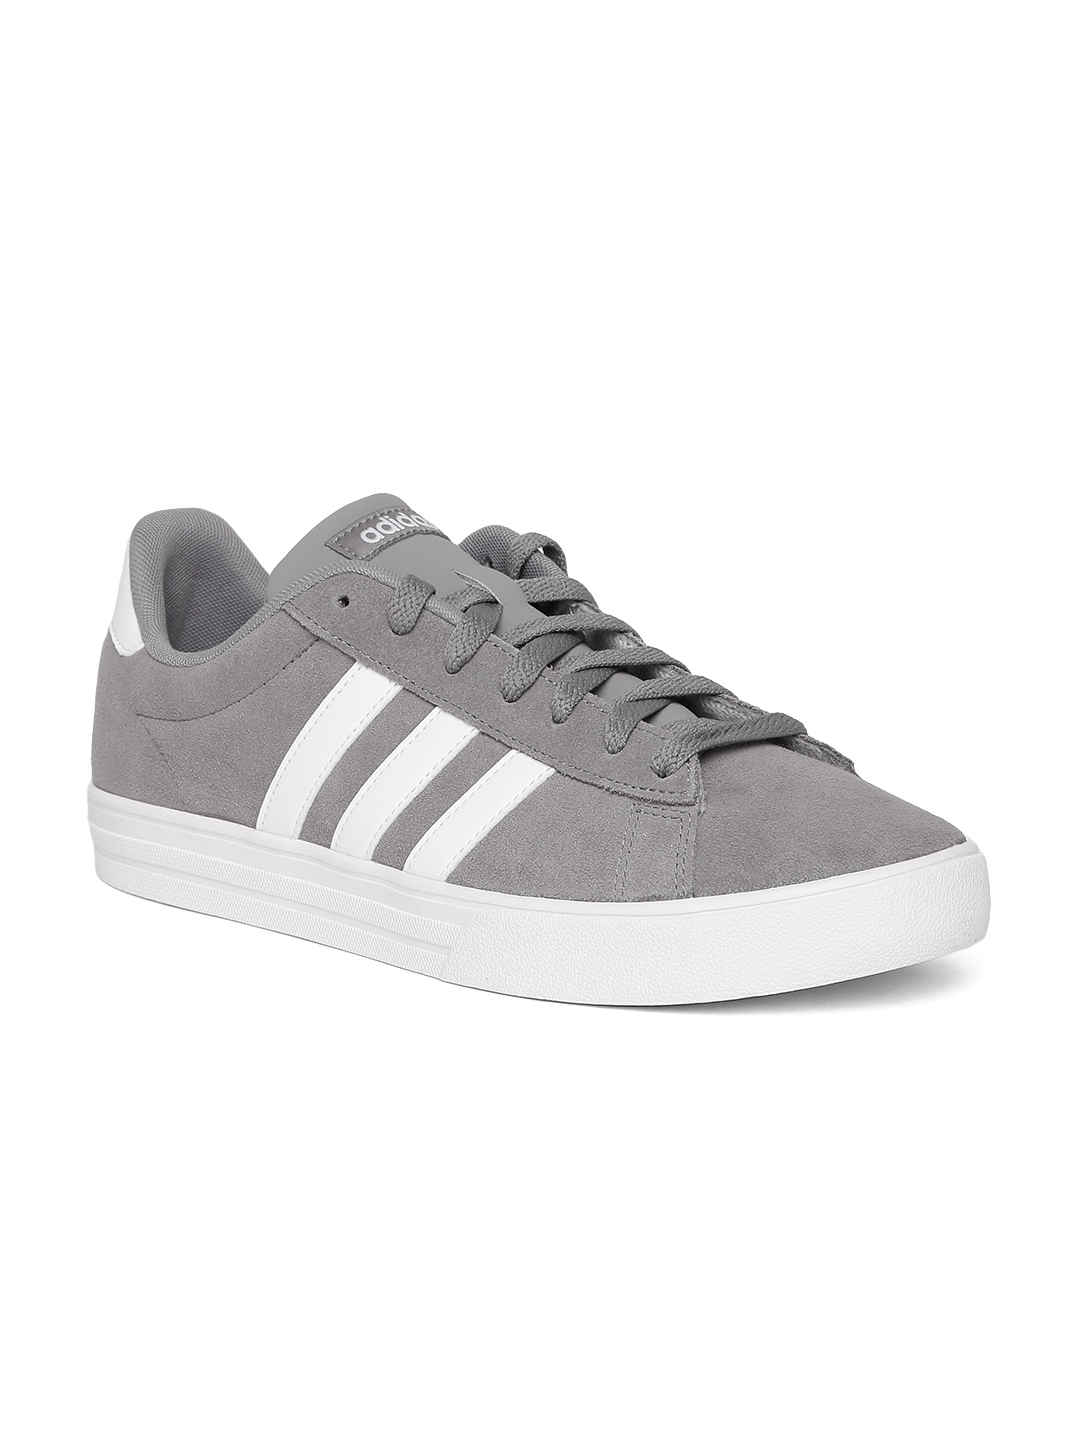 f349dbb21b96 Buy ADIDAS Men Grey DAILY 2.0 Sneakers - Casual Shoes for Men ...